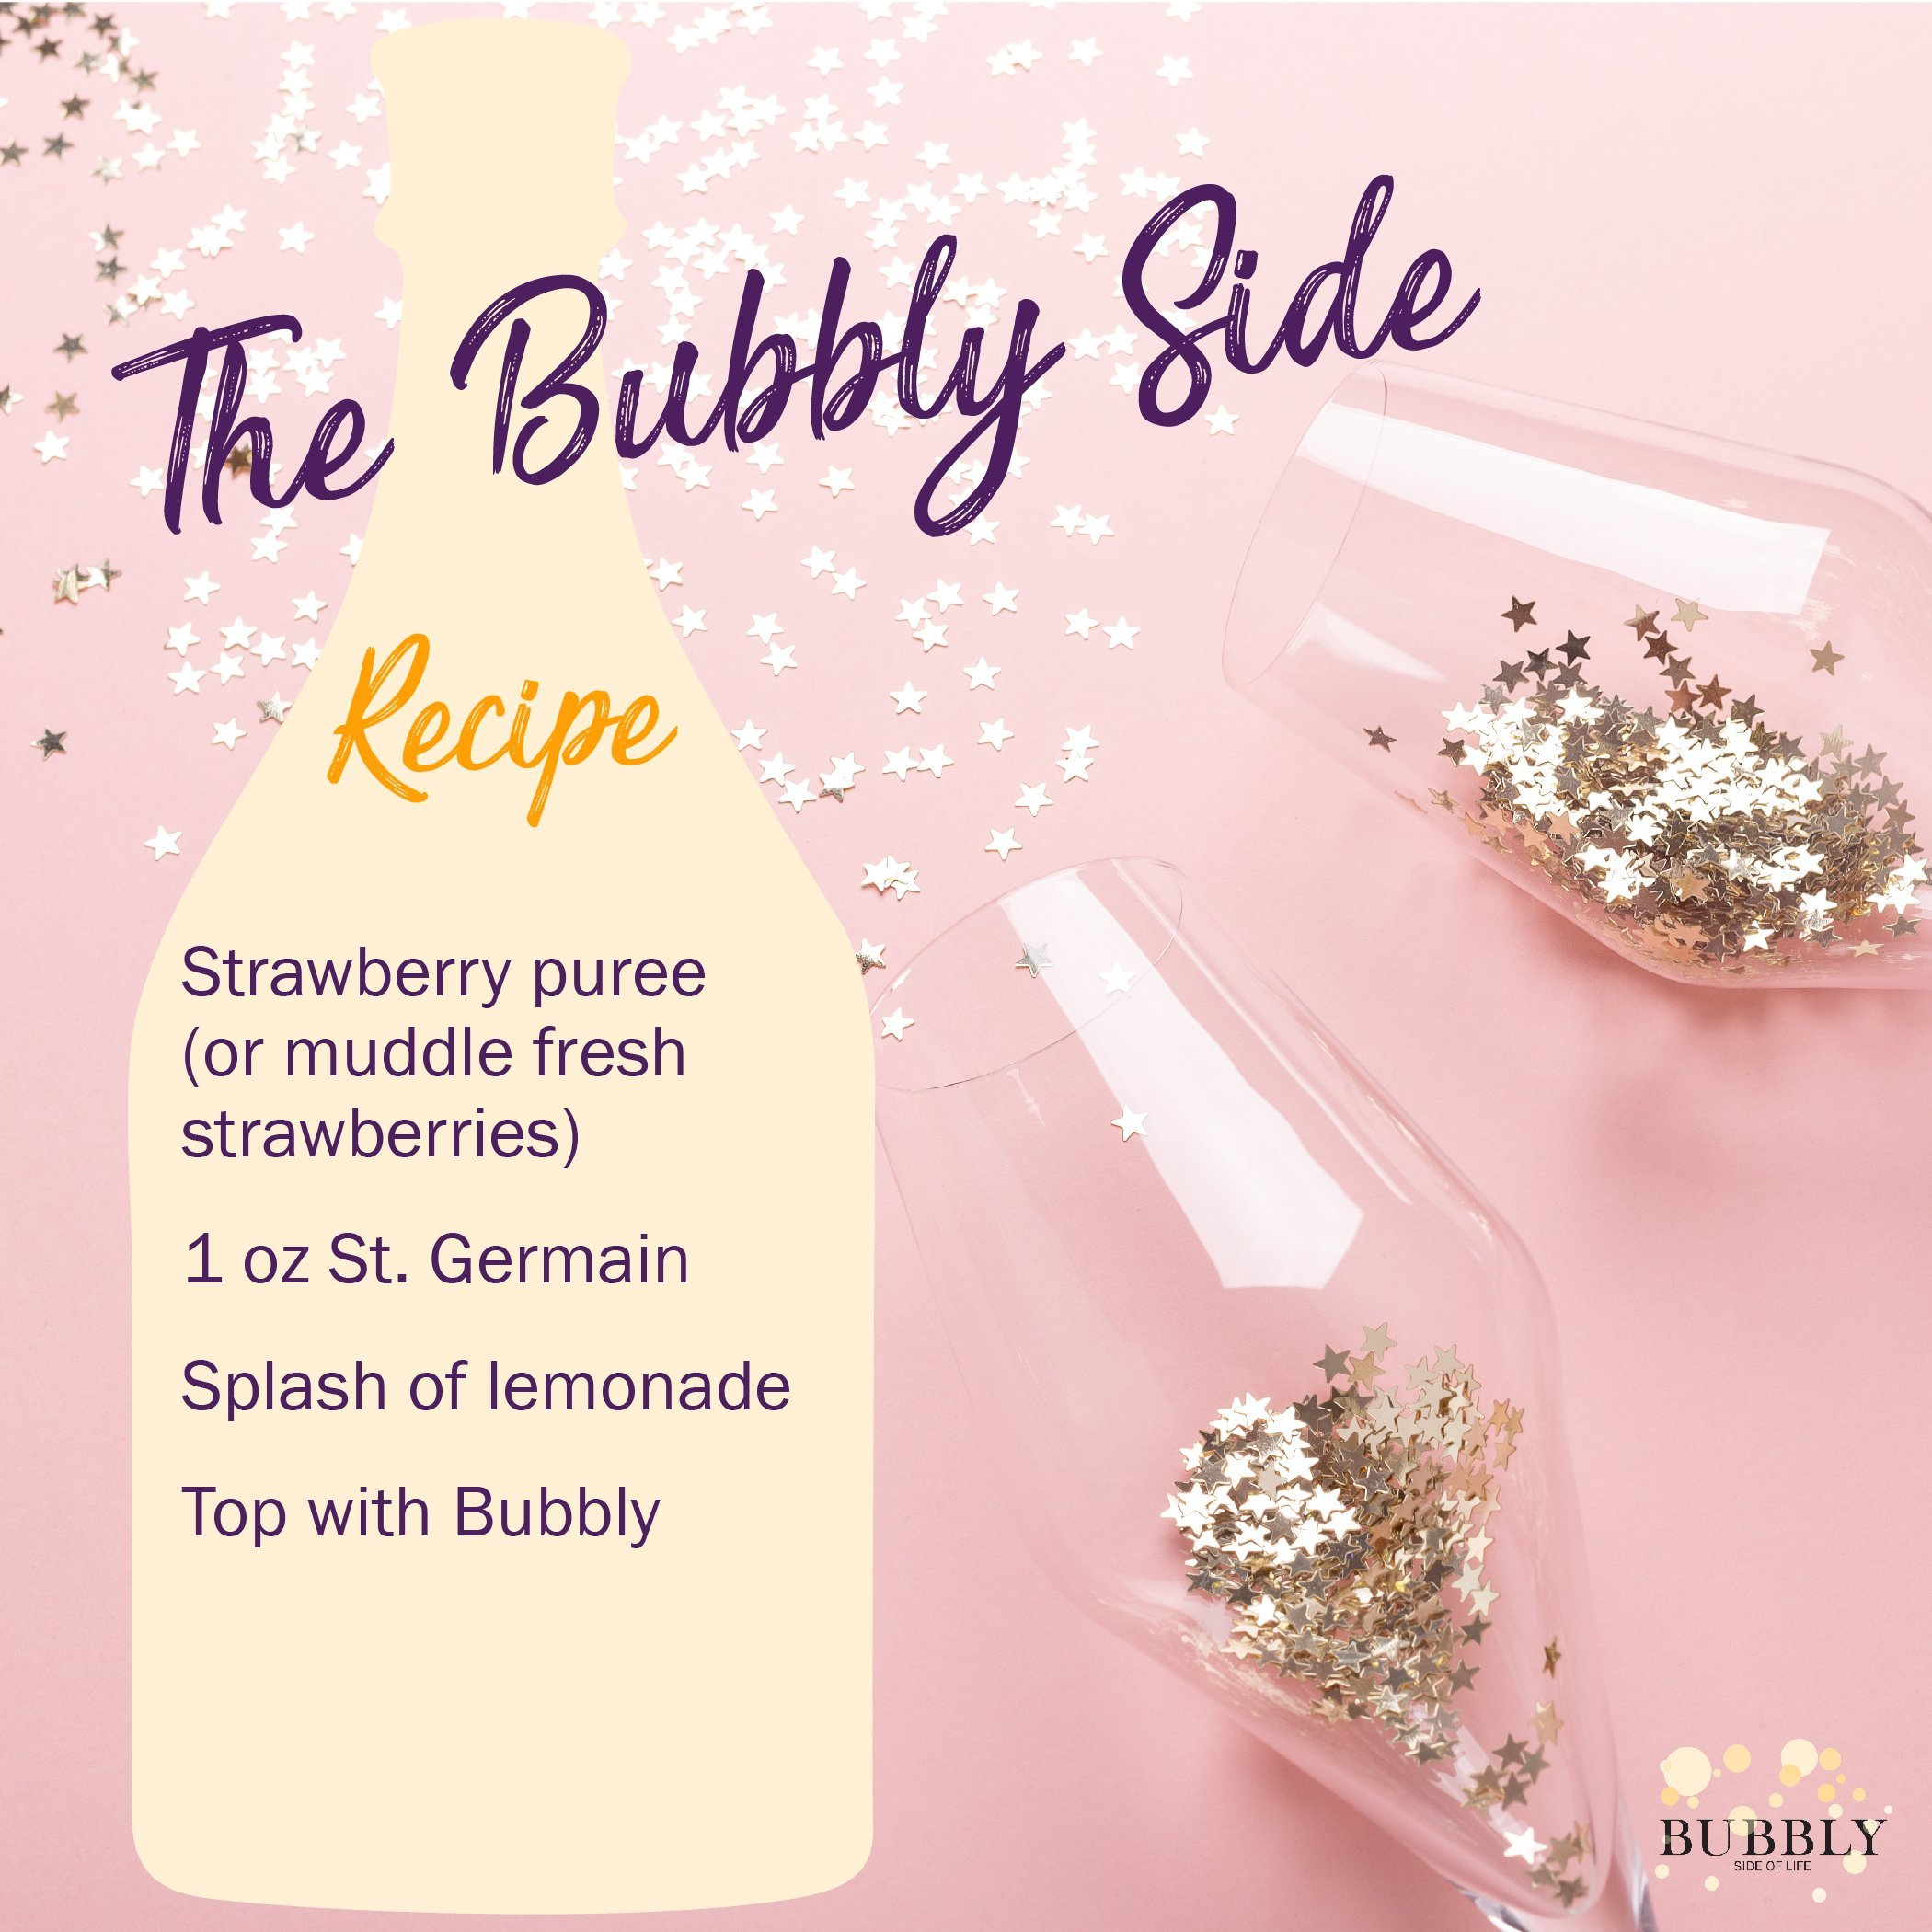 The Bubble side of life recipe card